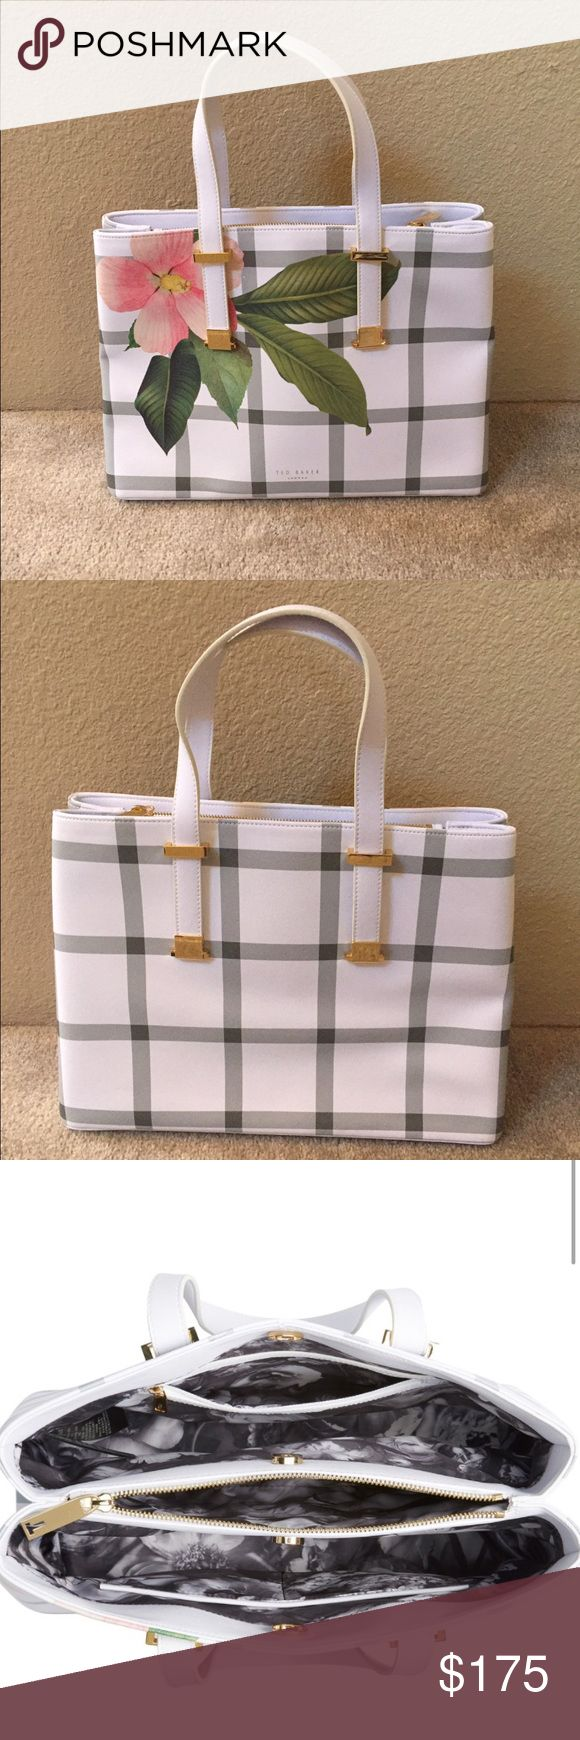 Ted Baker plaid bag Beautiful Ted Baker shopper bag. Brand new, perfect for spring. Inside print is an easy to clean material and the middle pouch is padded, so would be perfect for phone or iPad storage. Price is firm due to posh fees. Ted Baker Bags Totes